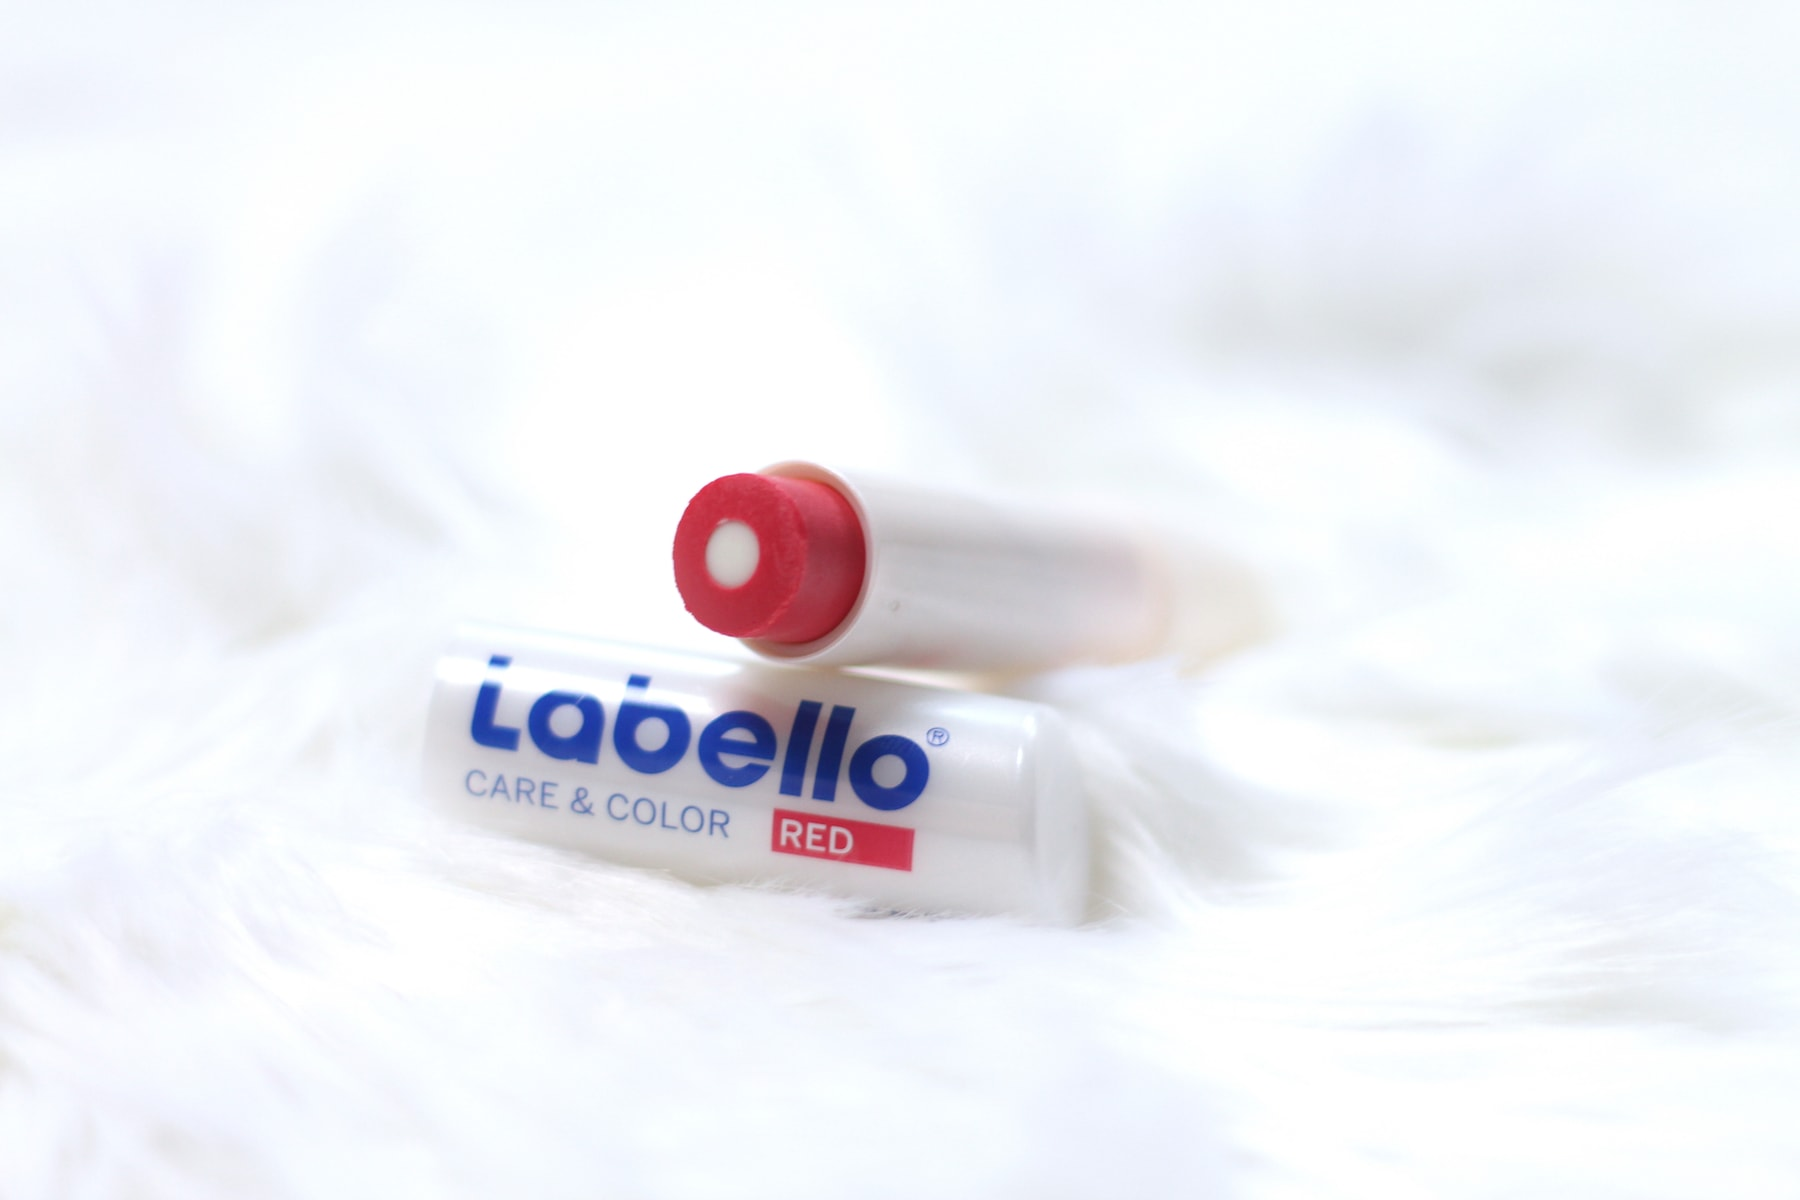 Labello Care and Color red